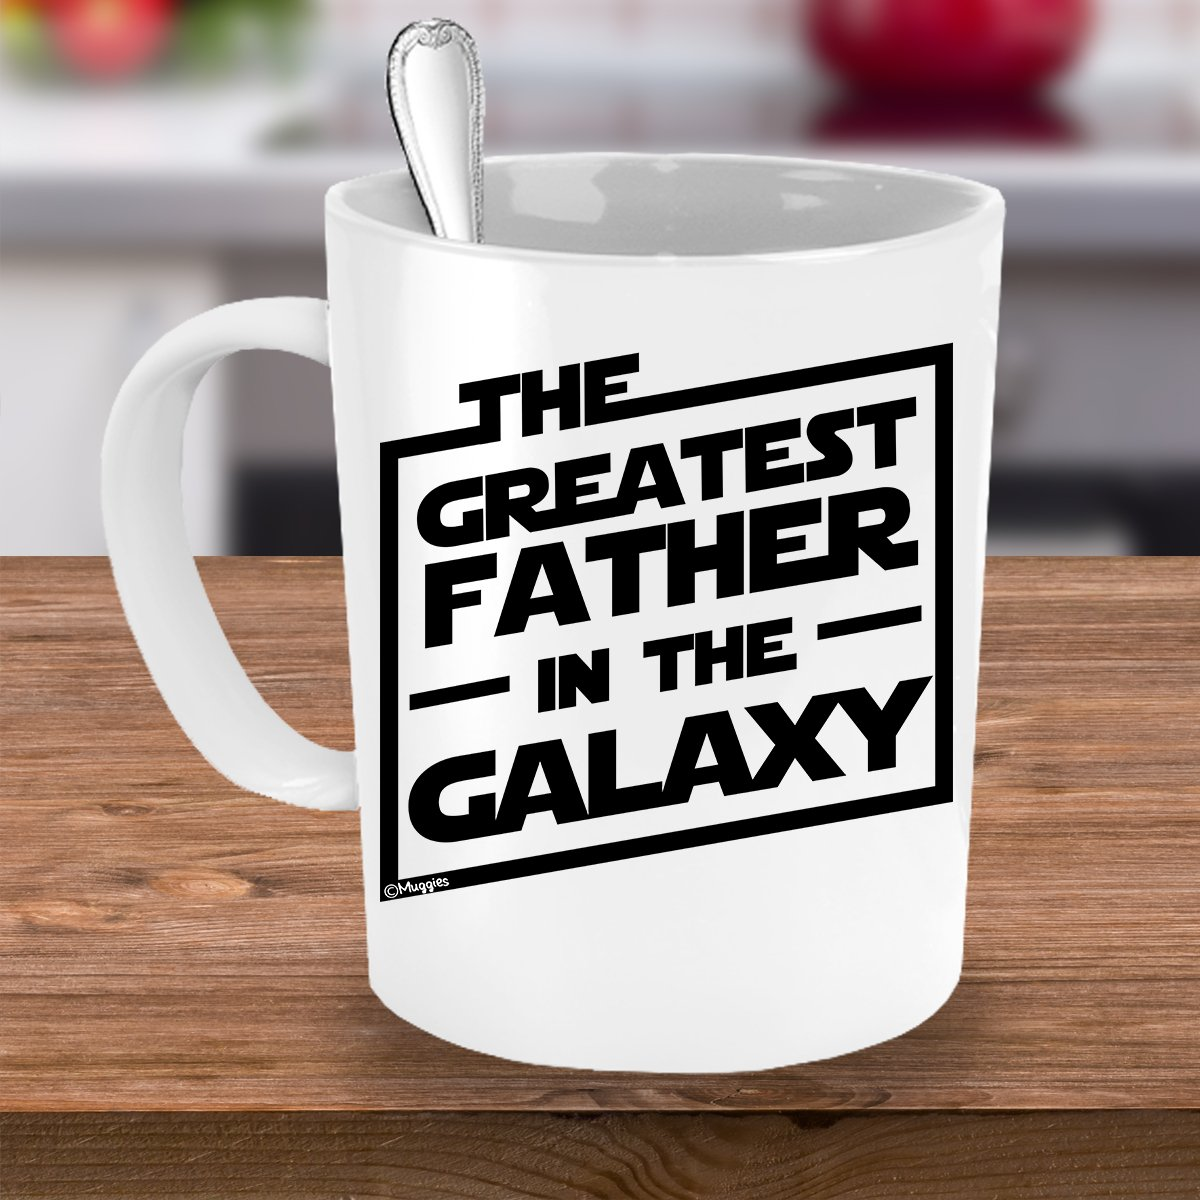 Muggies Greatest Father in The Galaxy 11oz. Coffee Tea Mug. Unique Funny Christmas, Xmas, Birthday, for Him - Super Star Men, Dad, Husband by GENUTRI (Image #2)